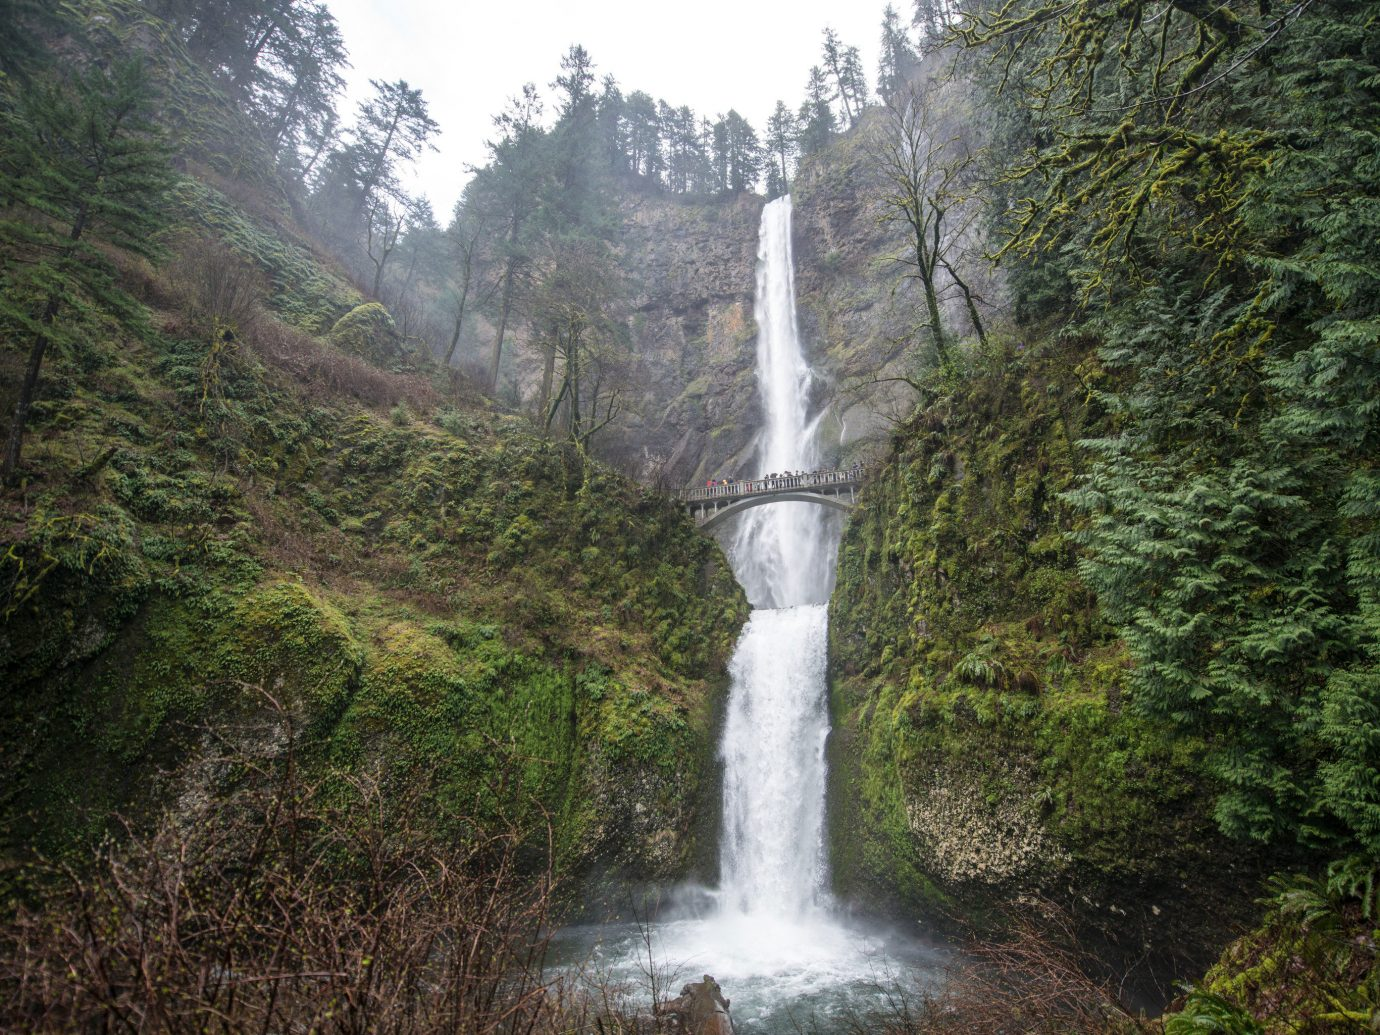 Lakes + Rivers Landmarks Road Trips Trip Ideas Weekend Getaways tree outdoor Nature Waterfall water body of water water feature geological phenomenon Forest rainforest wasserfall ravine old growth forest surrounded